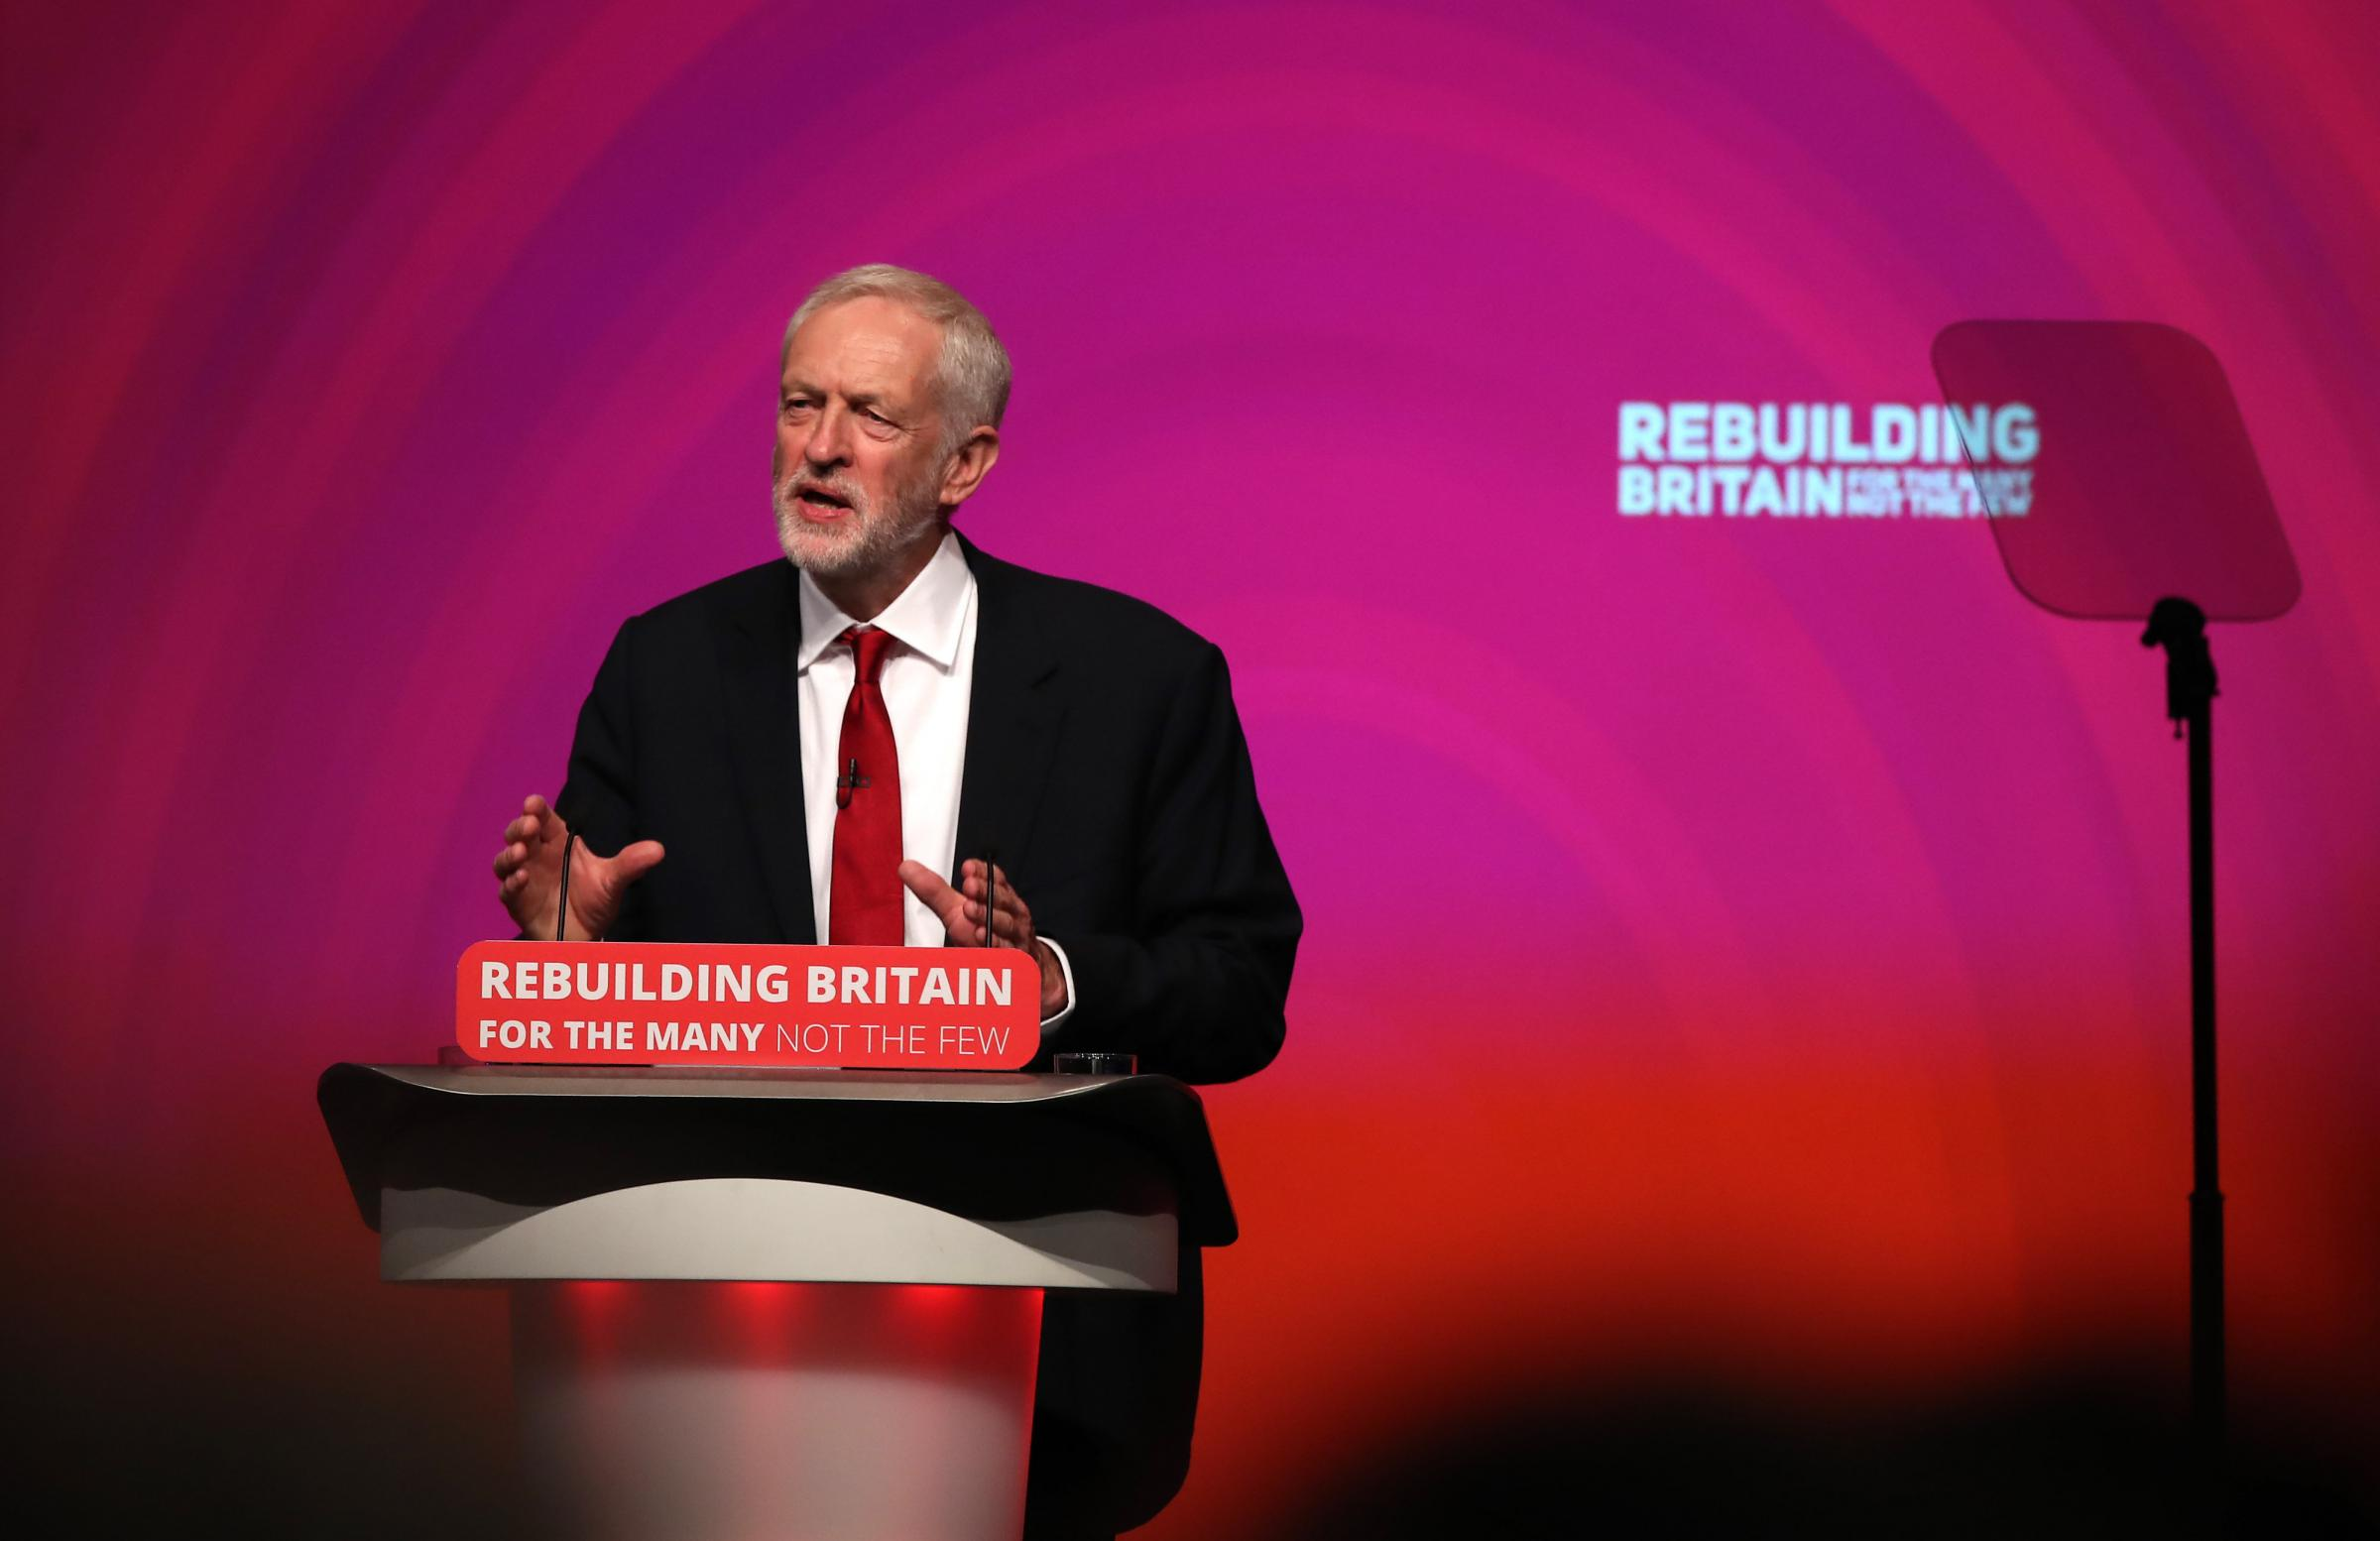 Labour's lack of resistance under Jeremy Corbyn's leadership threatens to hand victory on a plate to the Brexiteers